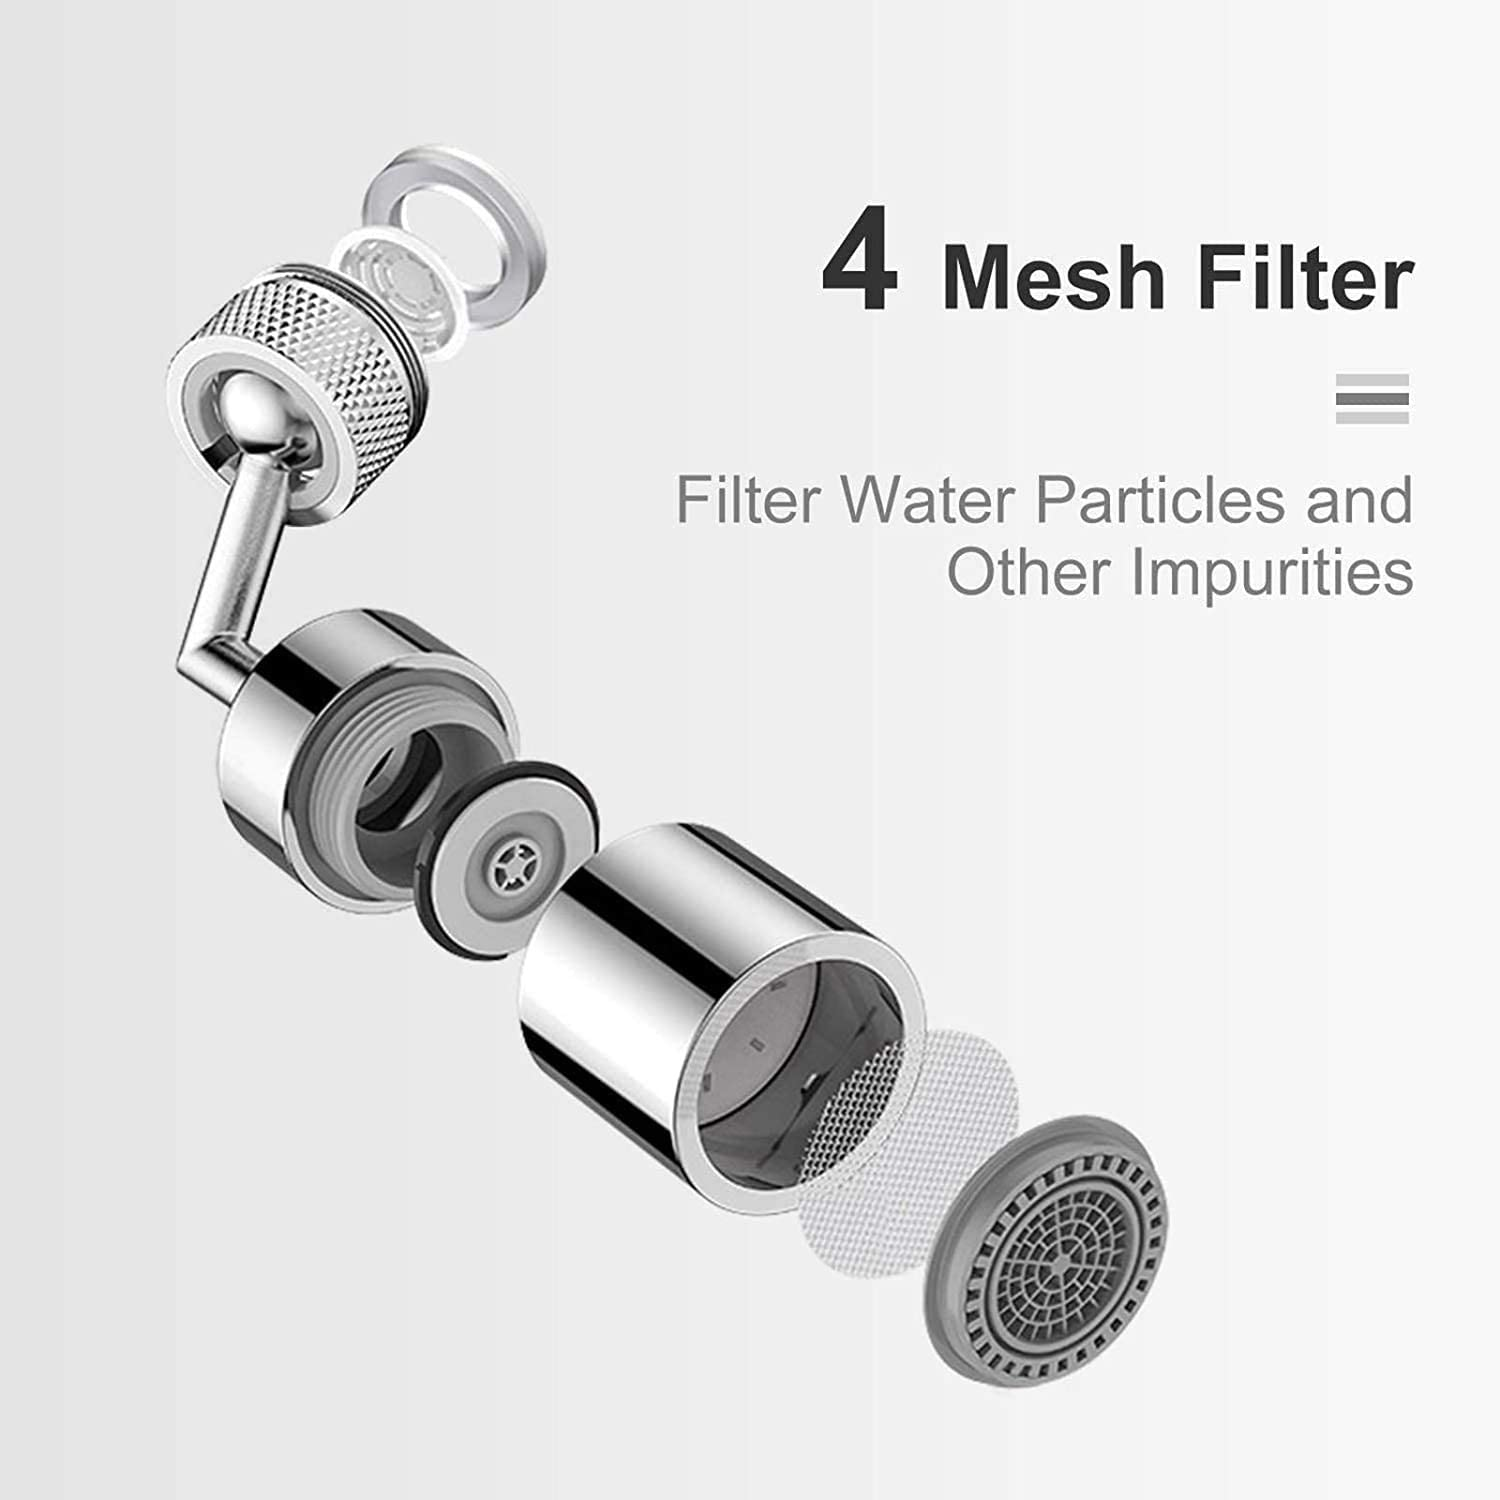 4-Layer Net Filter Anti-Splash Leakproof Design with Double Home kitchen bathroom accessories Universal Splash Filter Faucet,720/° Rotatable Faucet Sprayer Head